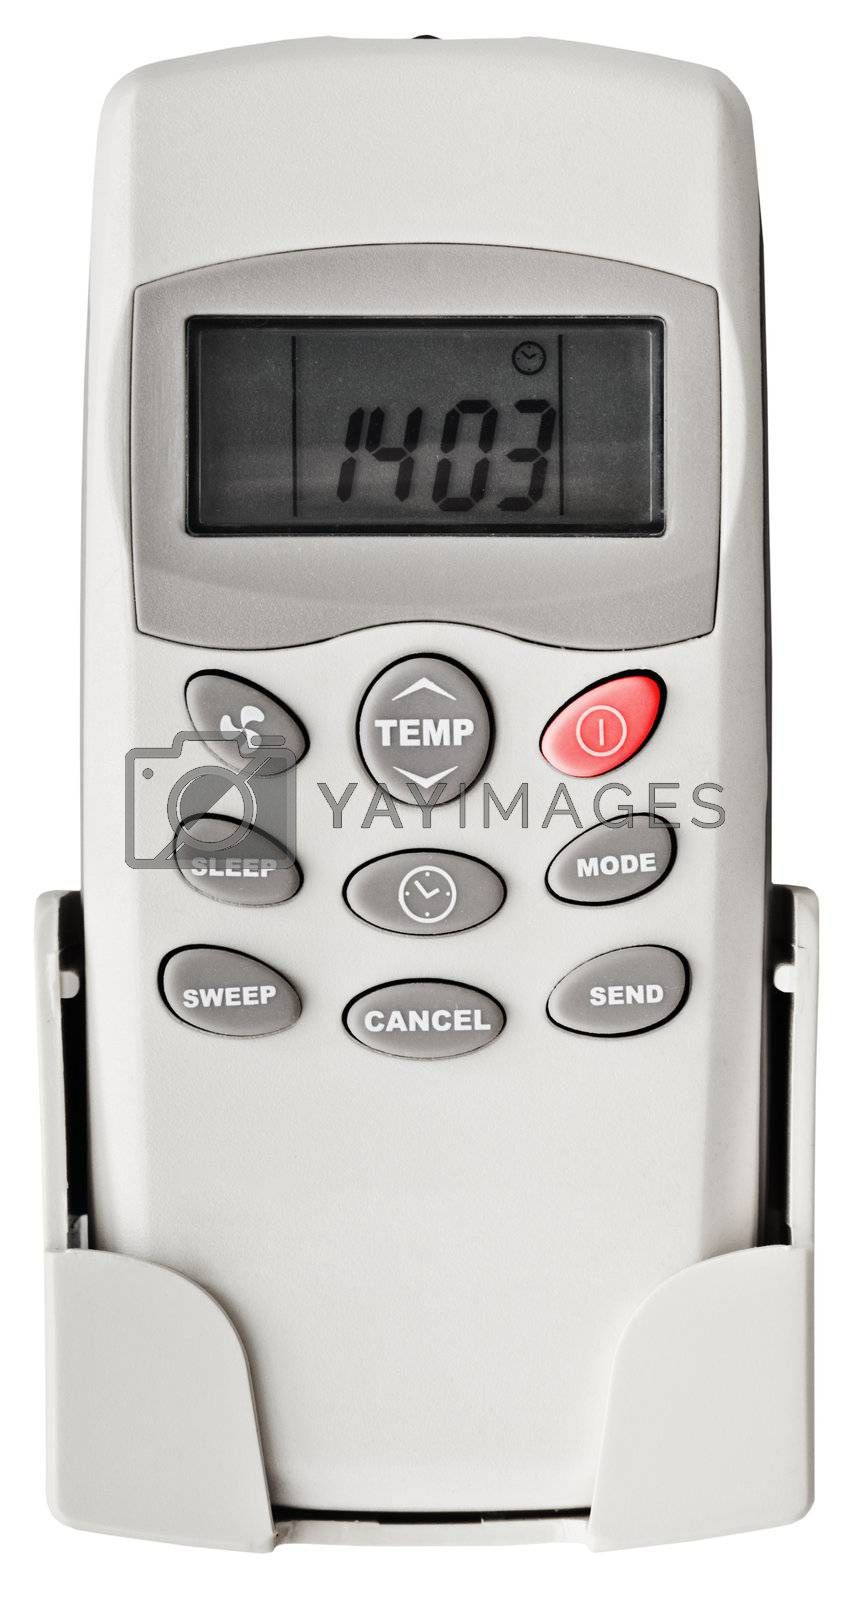 Remote control for household air-conditioner isolated on white background